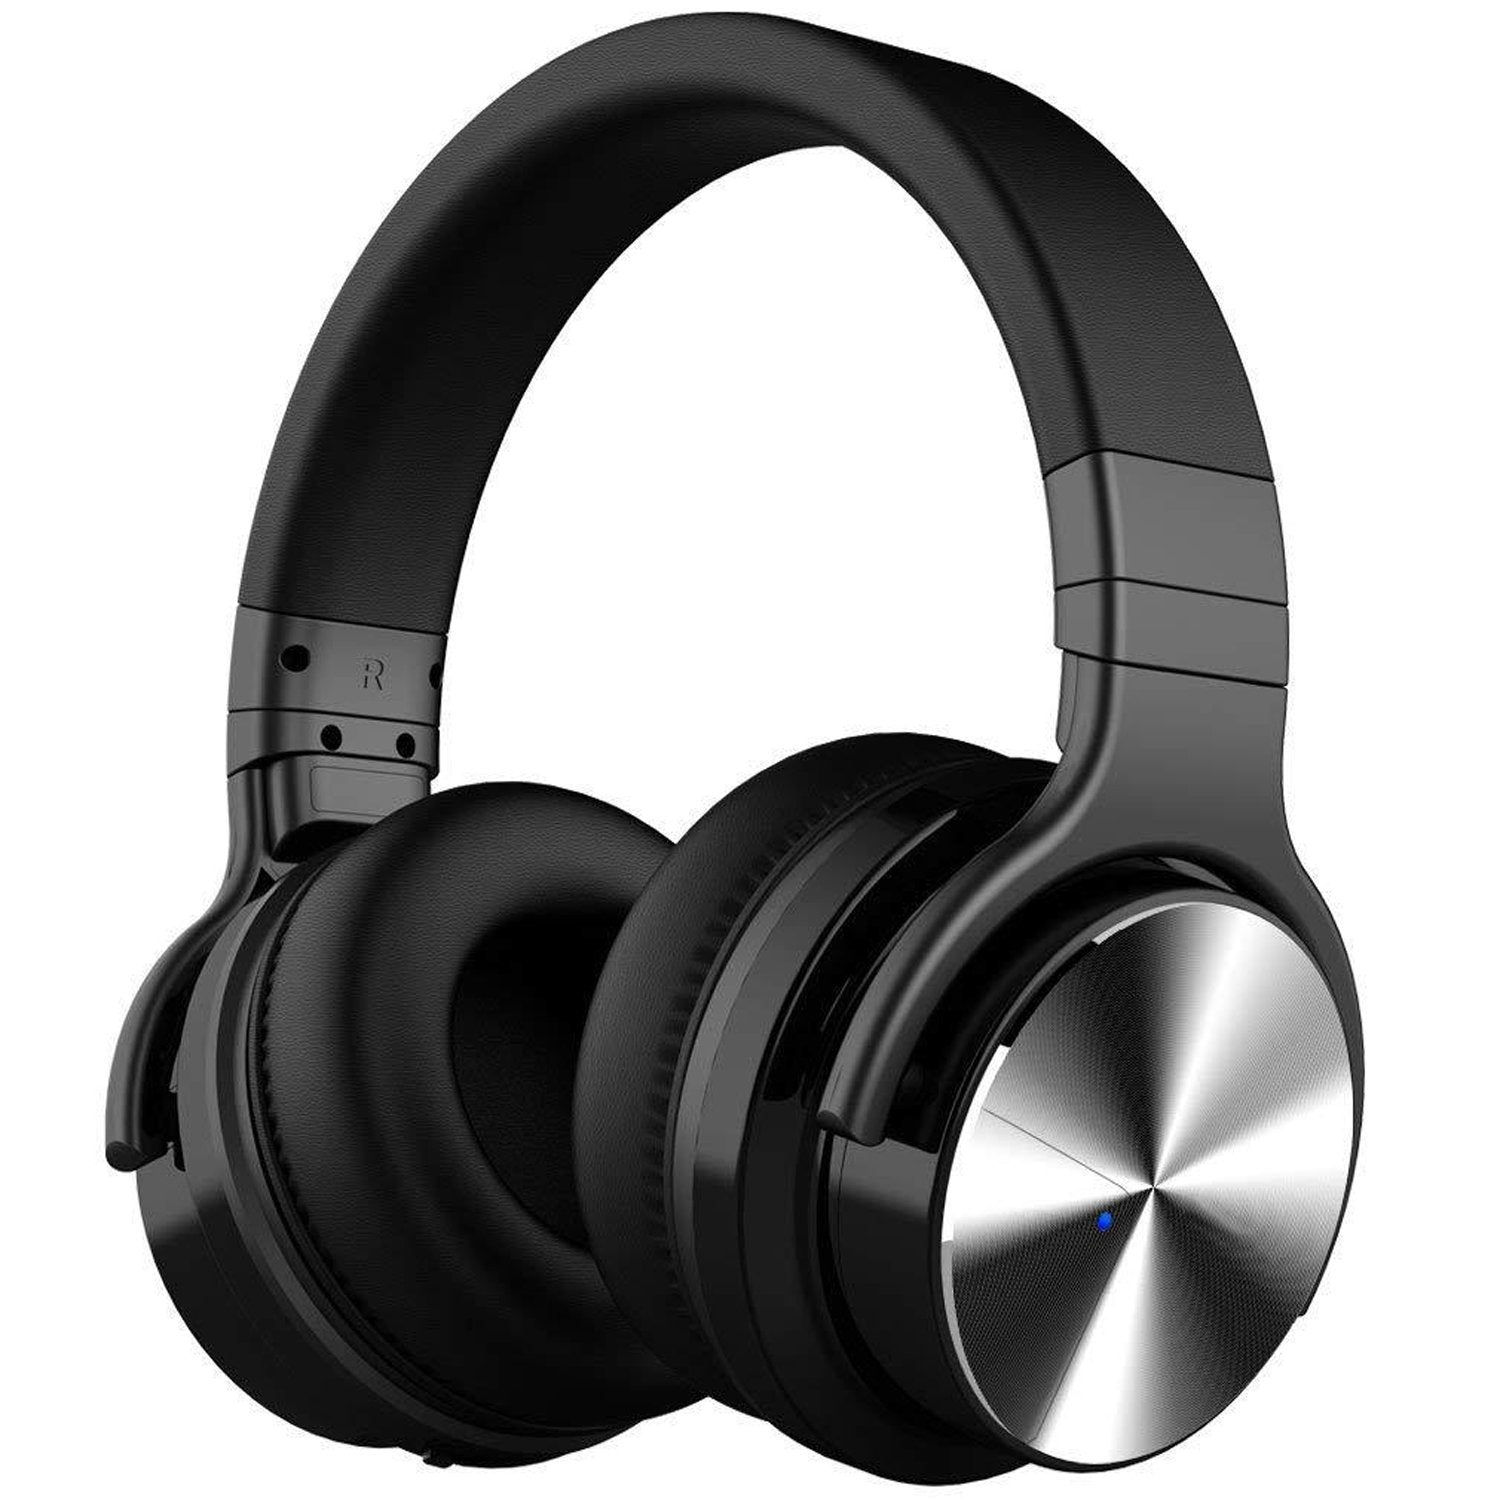 Bass Wireless Headphones - Black